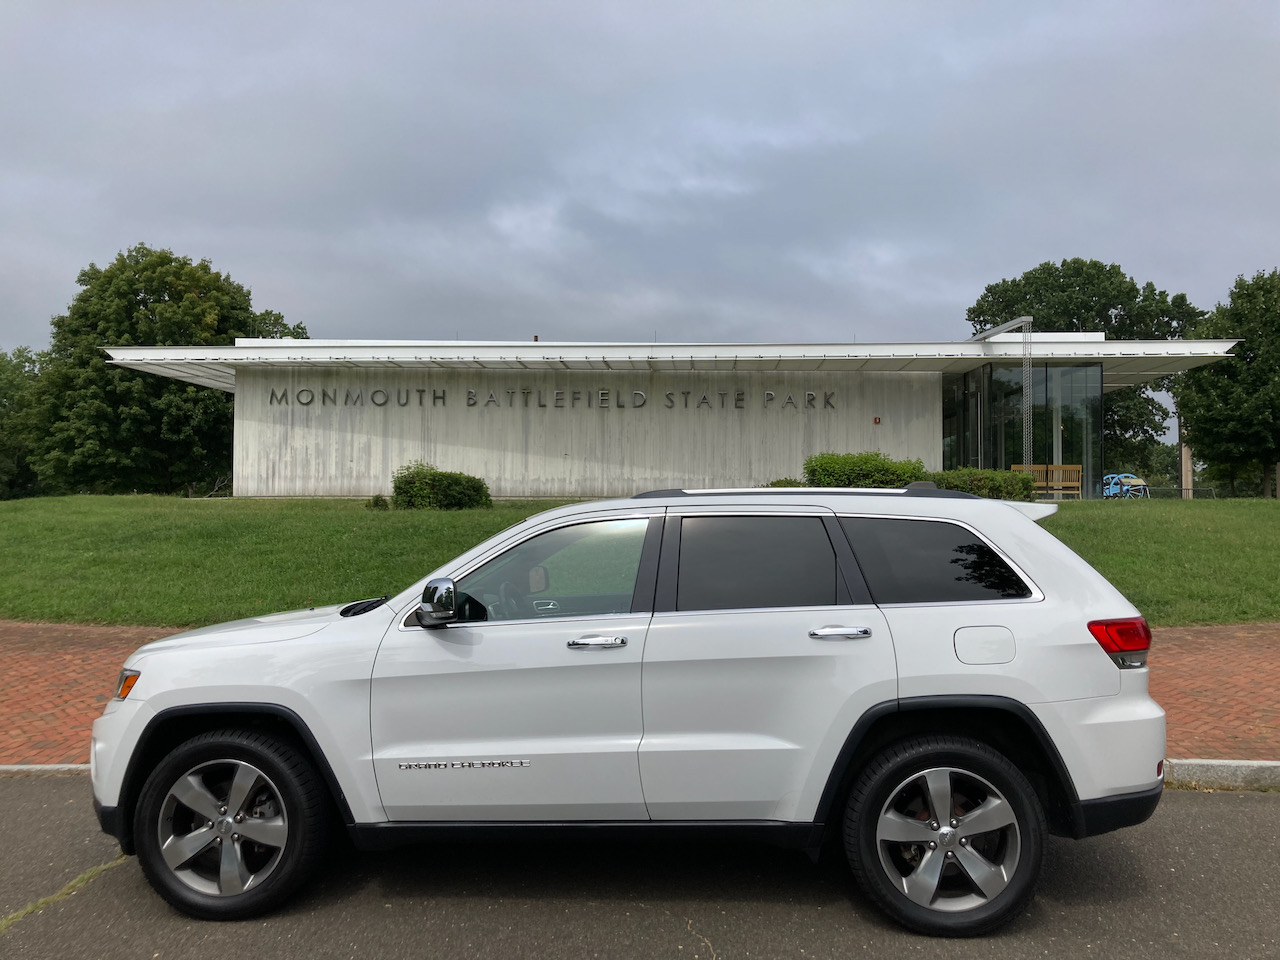 2014 Jeep Grand Cherokee in front of Monmouth Battlefield State Park Visitor Center.